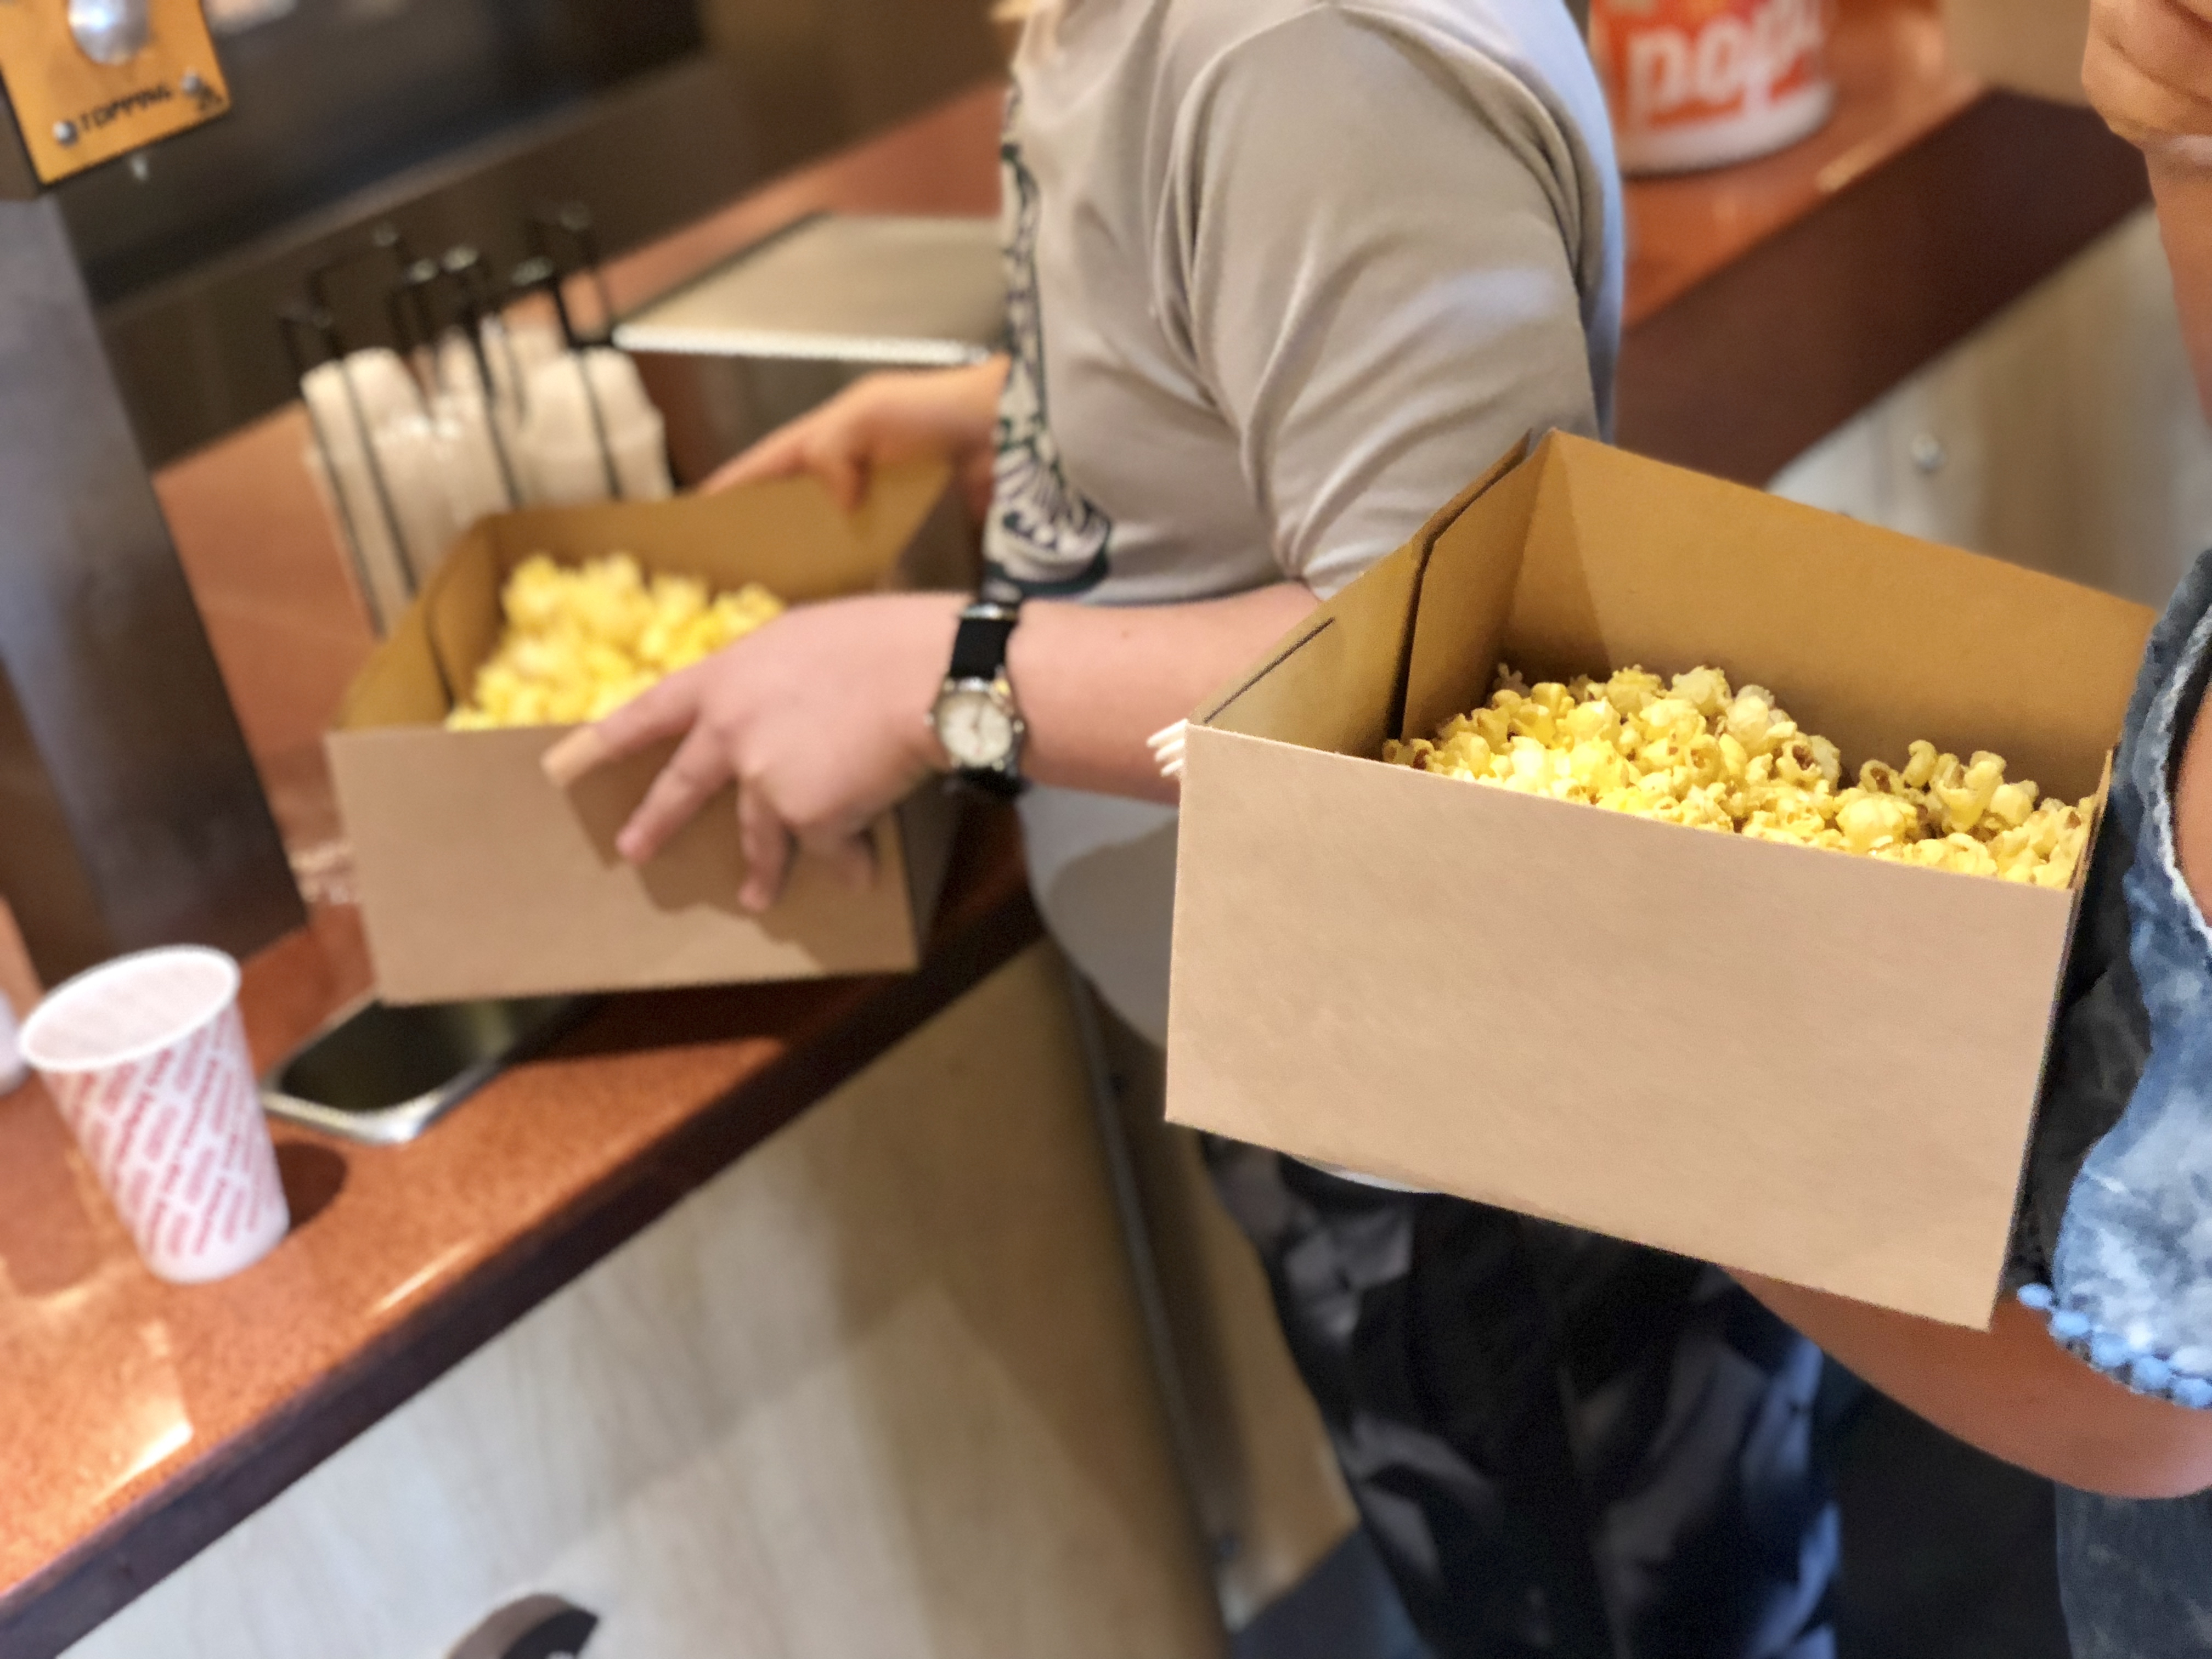 movies amc launching subscription moviepass - Boxes of popcorn